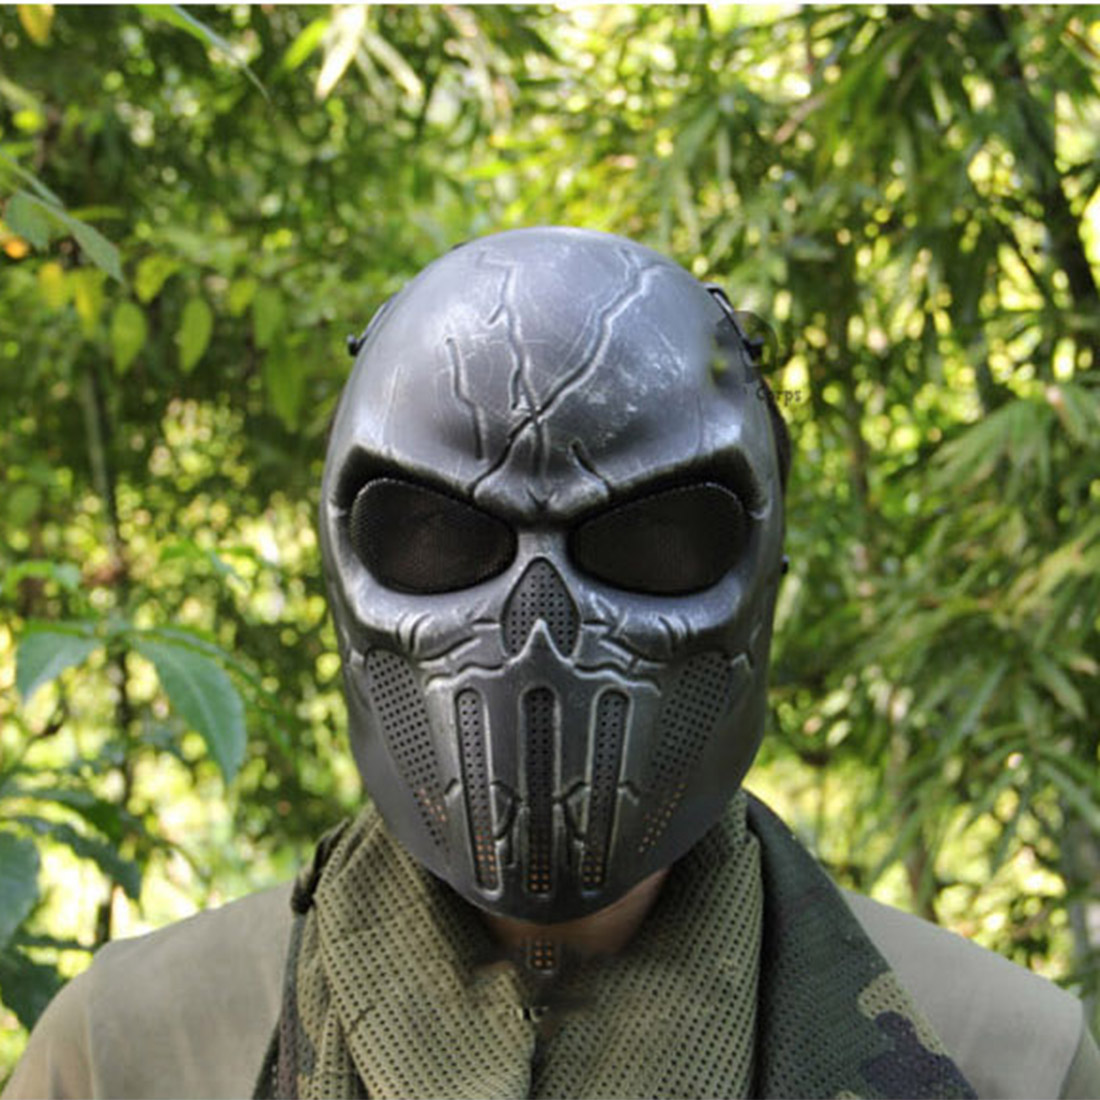 Outdoor Hunting CS War Game Airsoft Mask Skull Skeleton Paintball Full Face Tactical Protection Mask-White Red Black+Silver